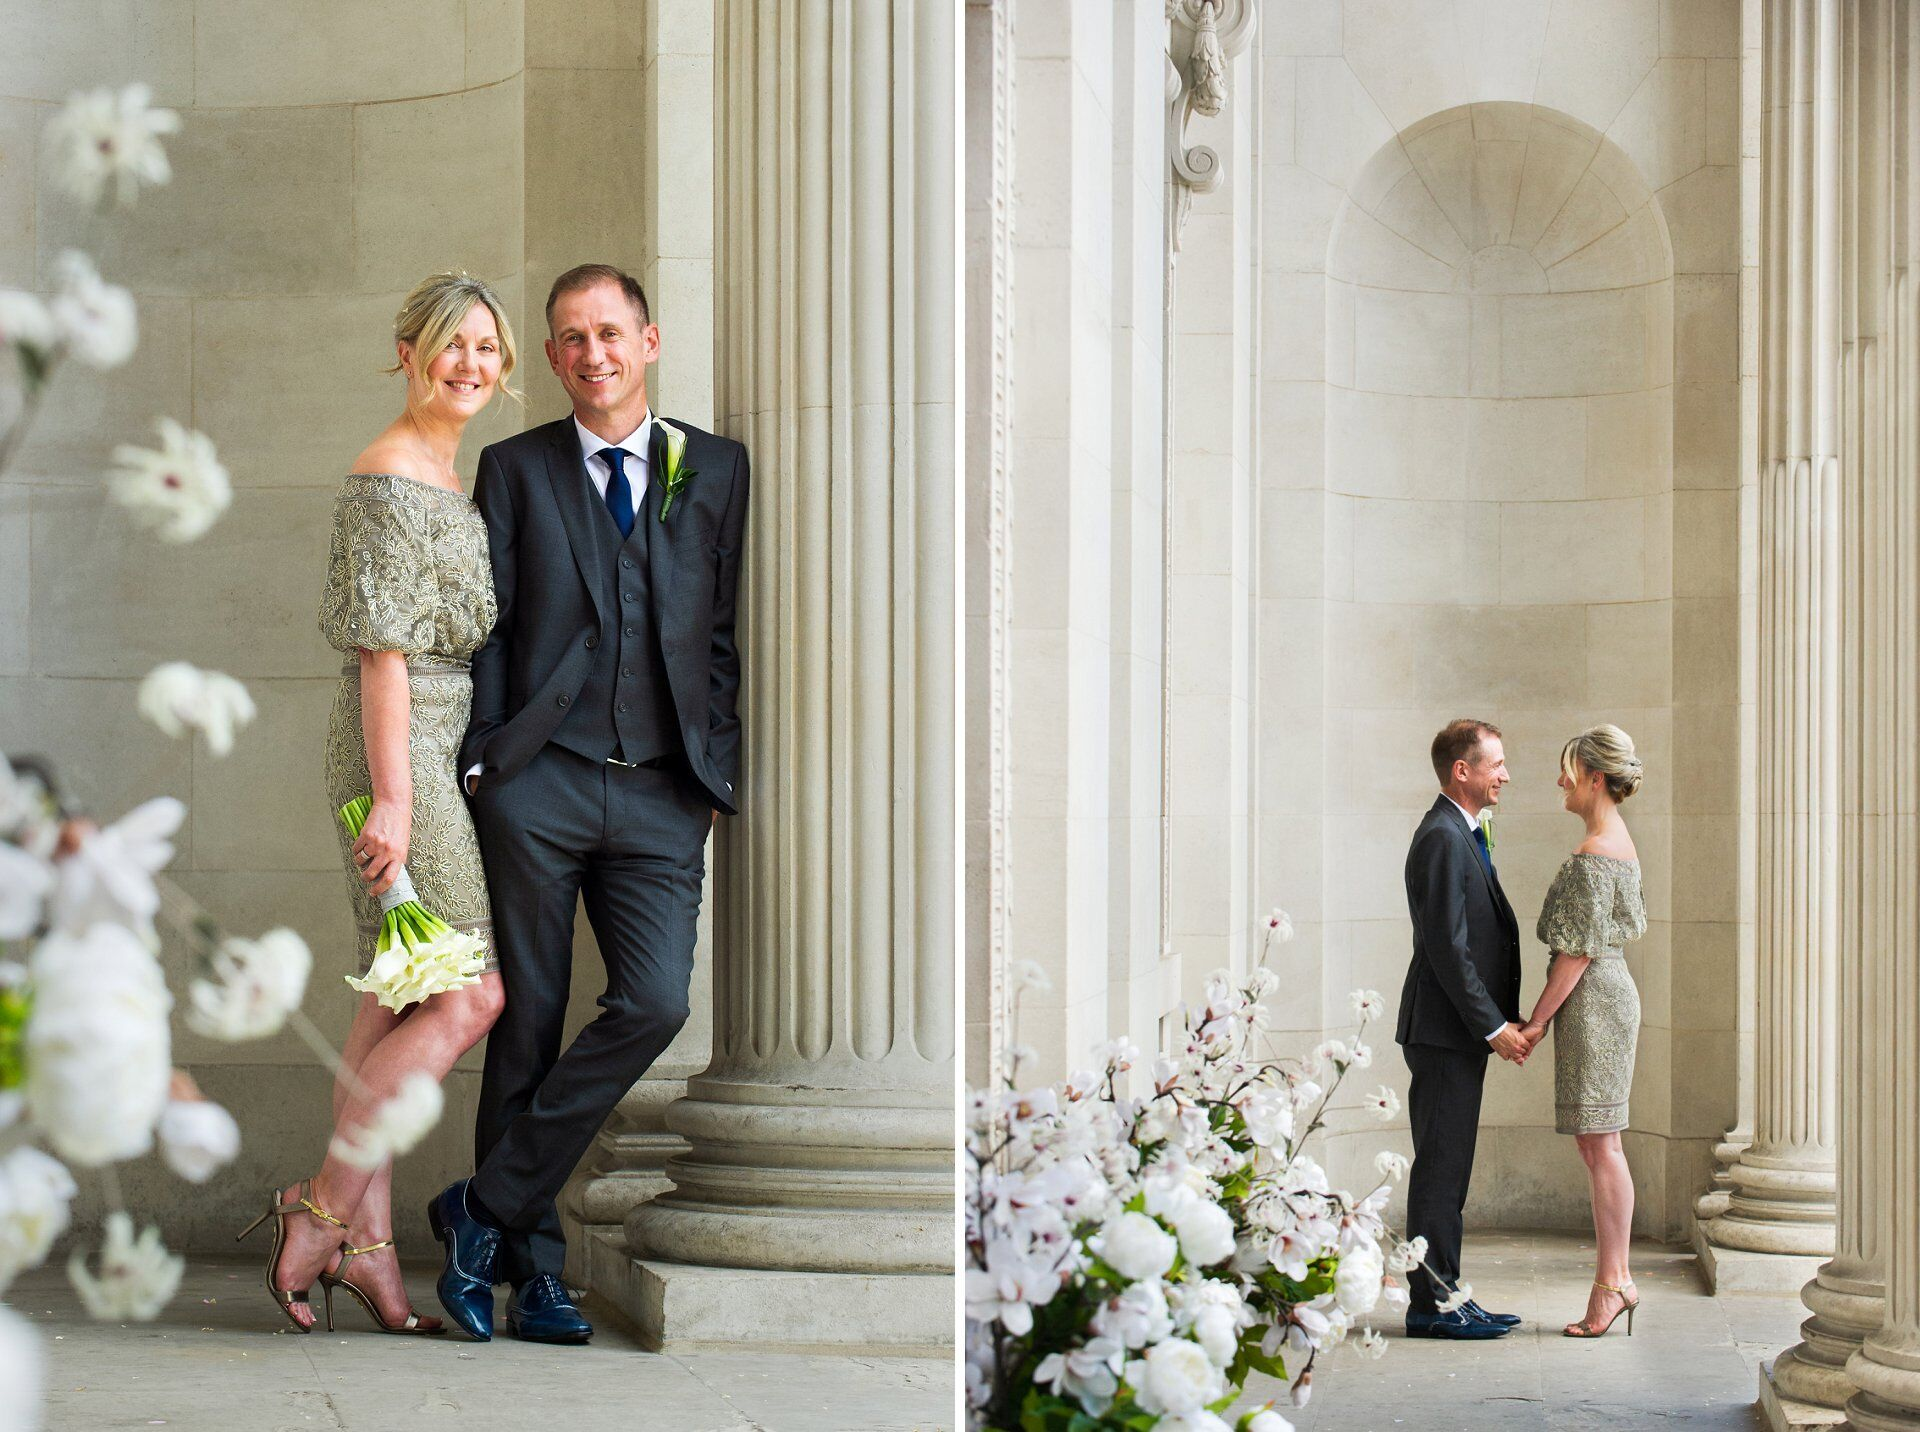 the fluted columns work beautifully for brenda and michaels couple photos at old marylebone town hall